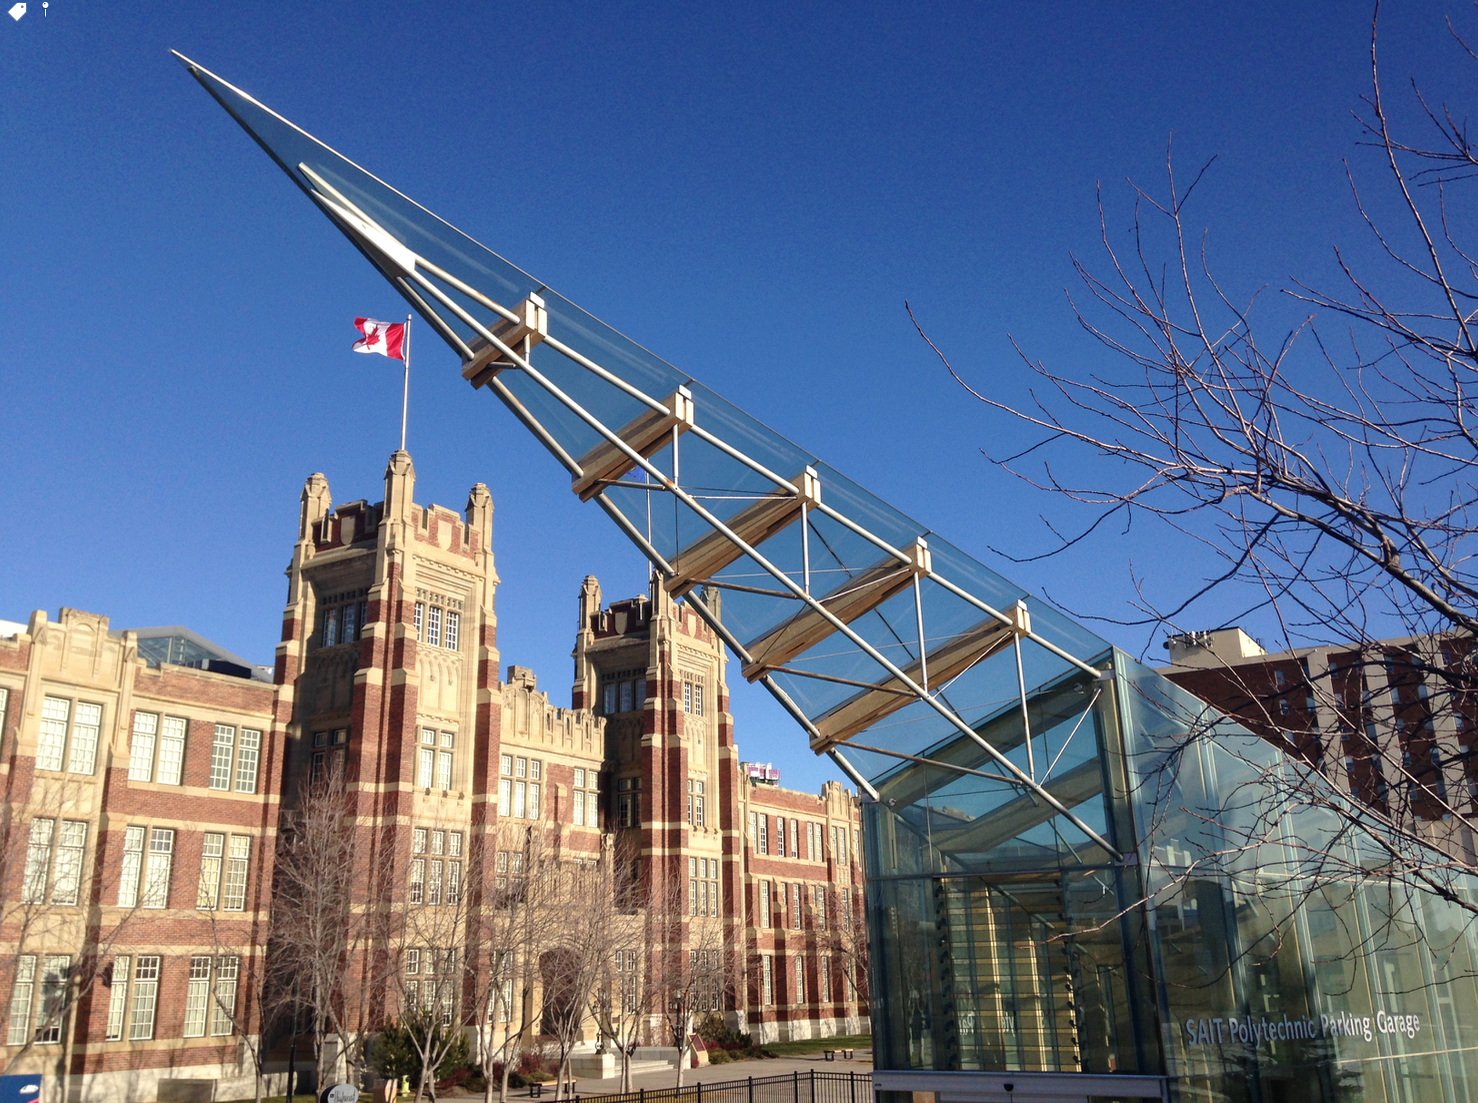 The SAIT campus offers a wonderful juxtaposition of the old and new.